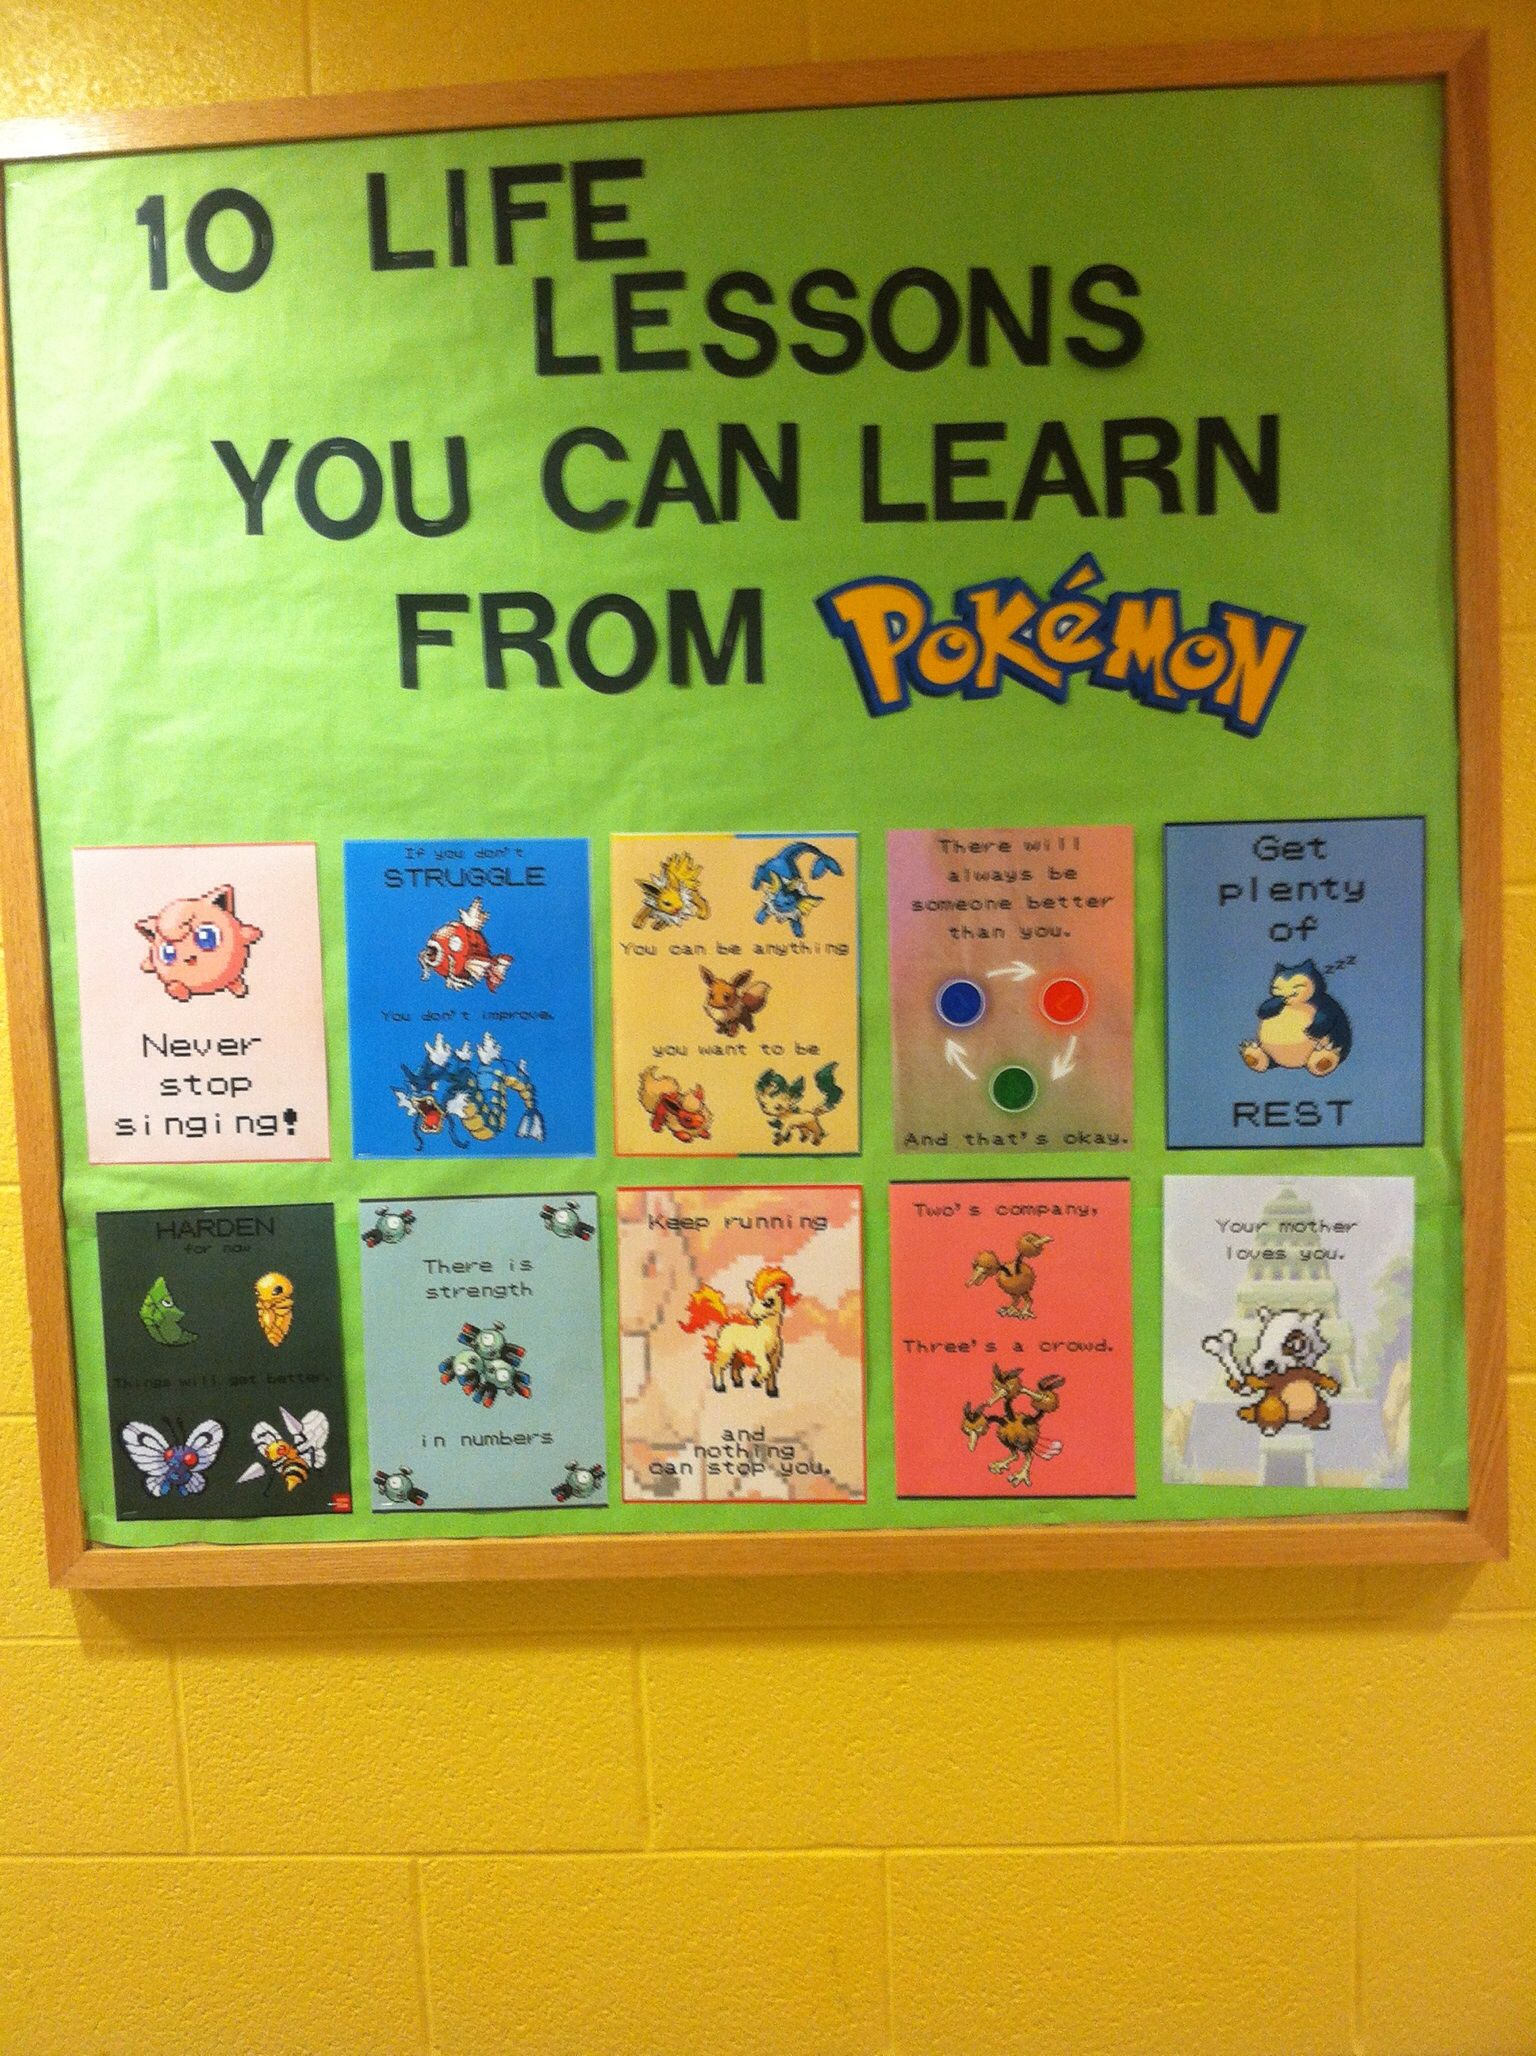 10 Life Lessons You Can Learn From Pokemon